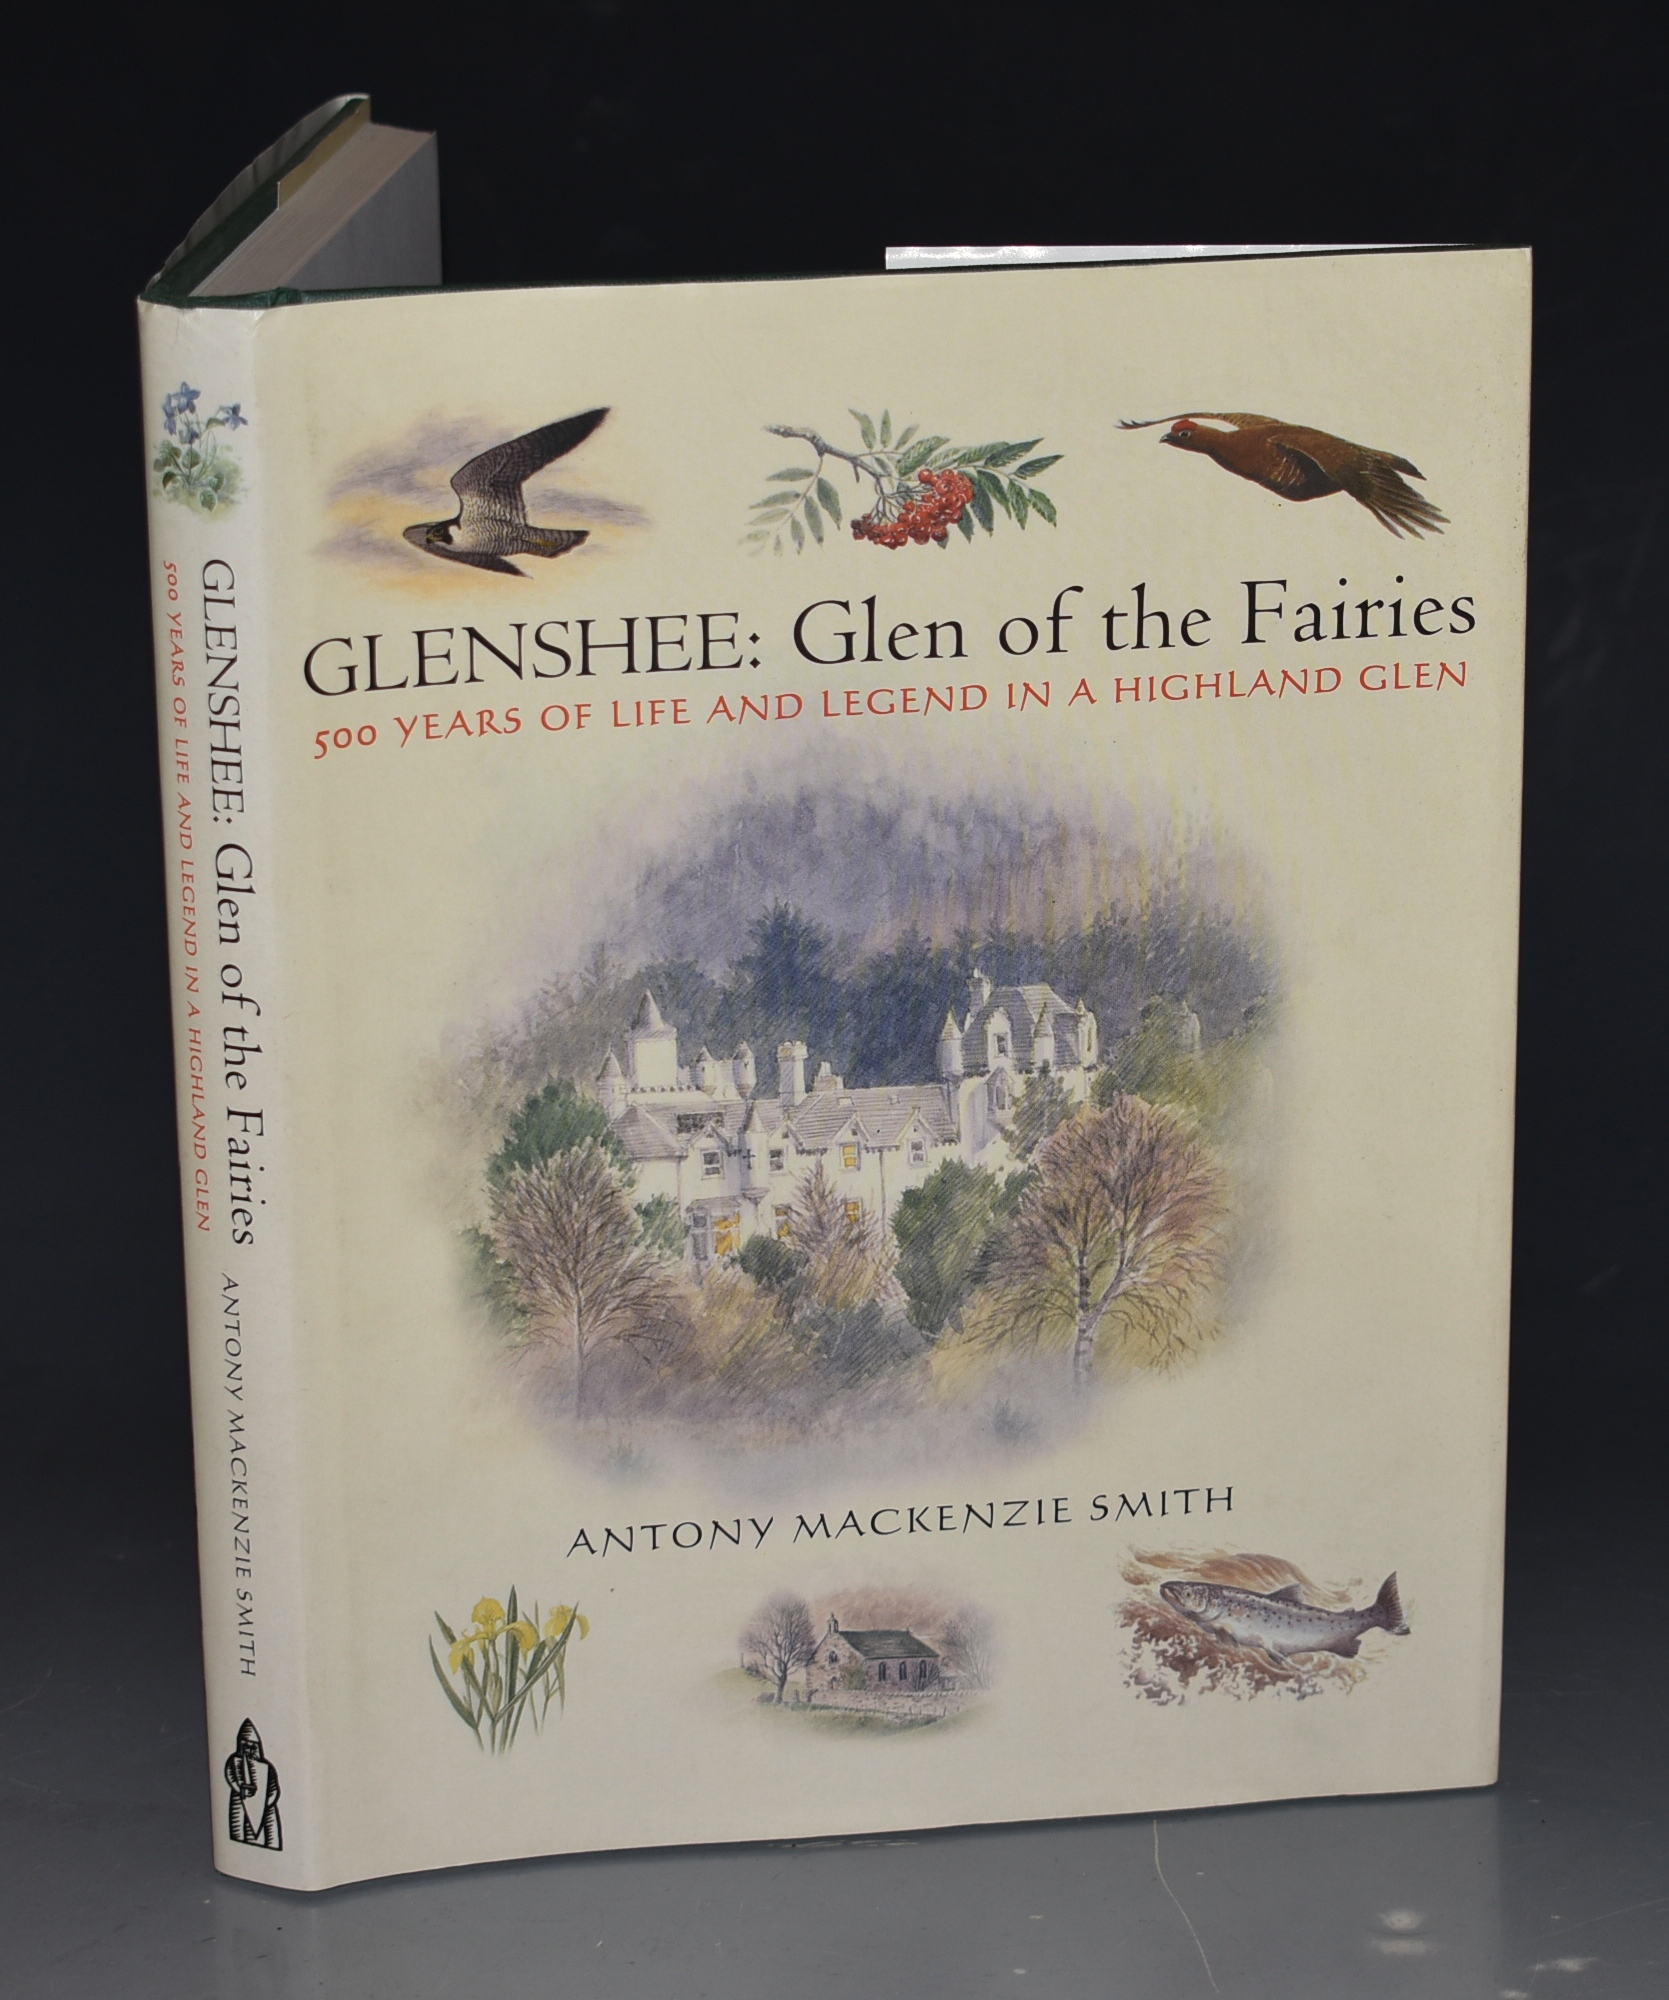 Image for Glenshee, Glen of The Fairies. 500 Years of Life and Legend in a Highland Glen. Watercolours by Philip Snow. SIGNED COPY.